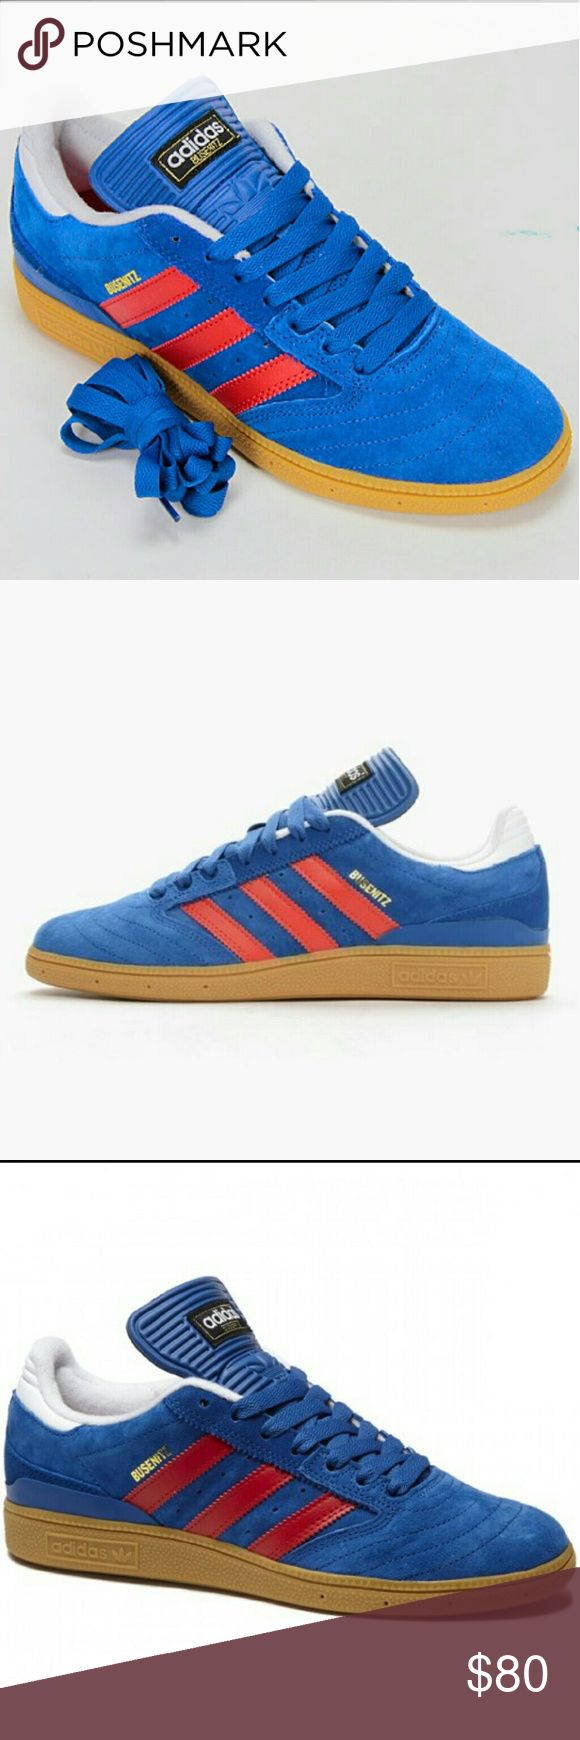 BUSENITZ PRO SHOES ADIDAS Busenitz Original Men's Size 9.5 Blue Brand New With Box adidas Shoes Sneakers